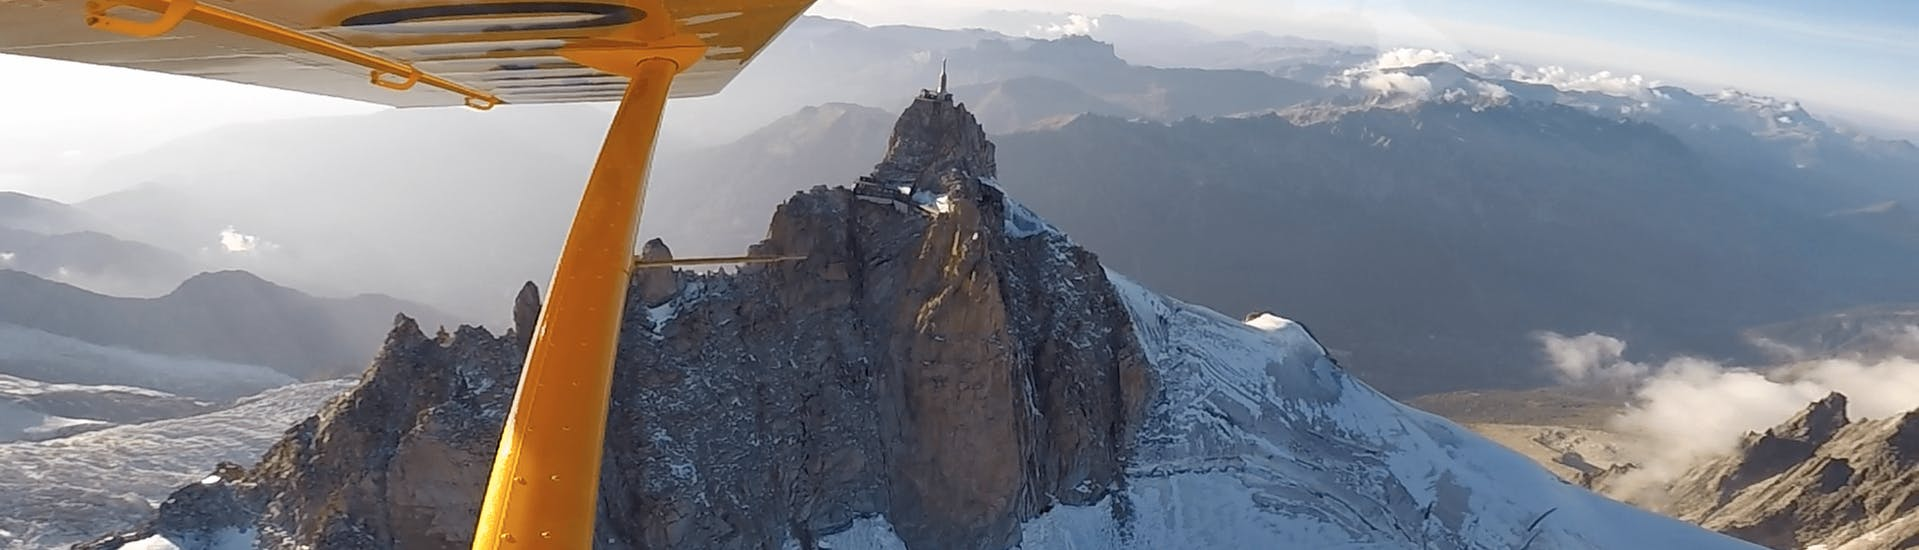 The tourist and his pilot are contemplating the Aiguille du midi during an Ultralight Aircraft flight above the Mont Blanc Massif.